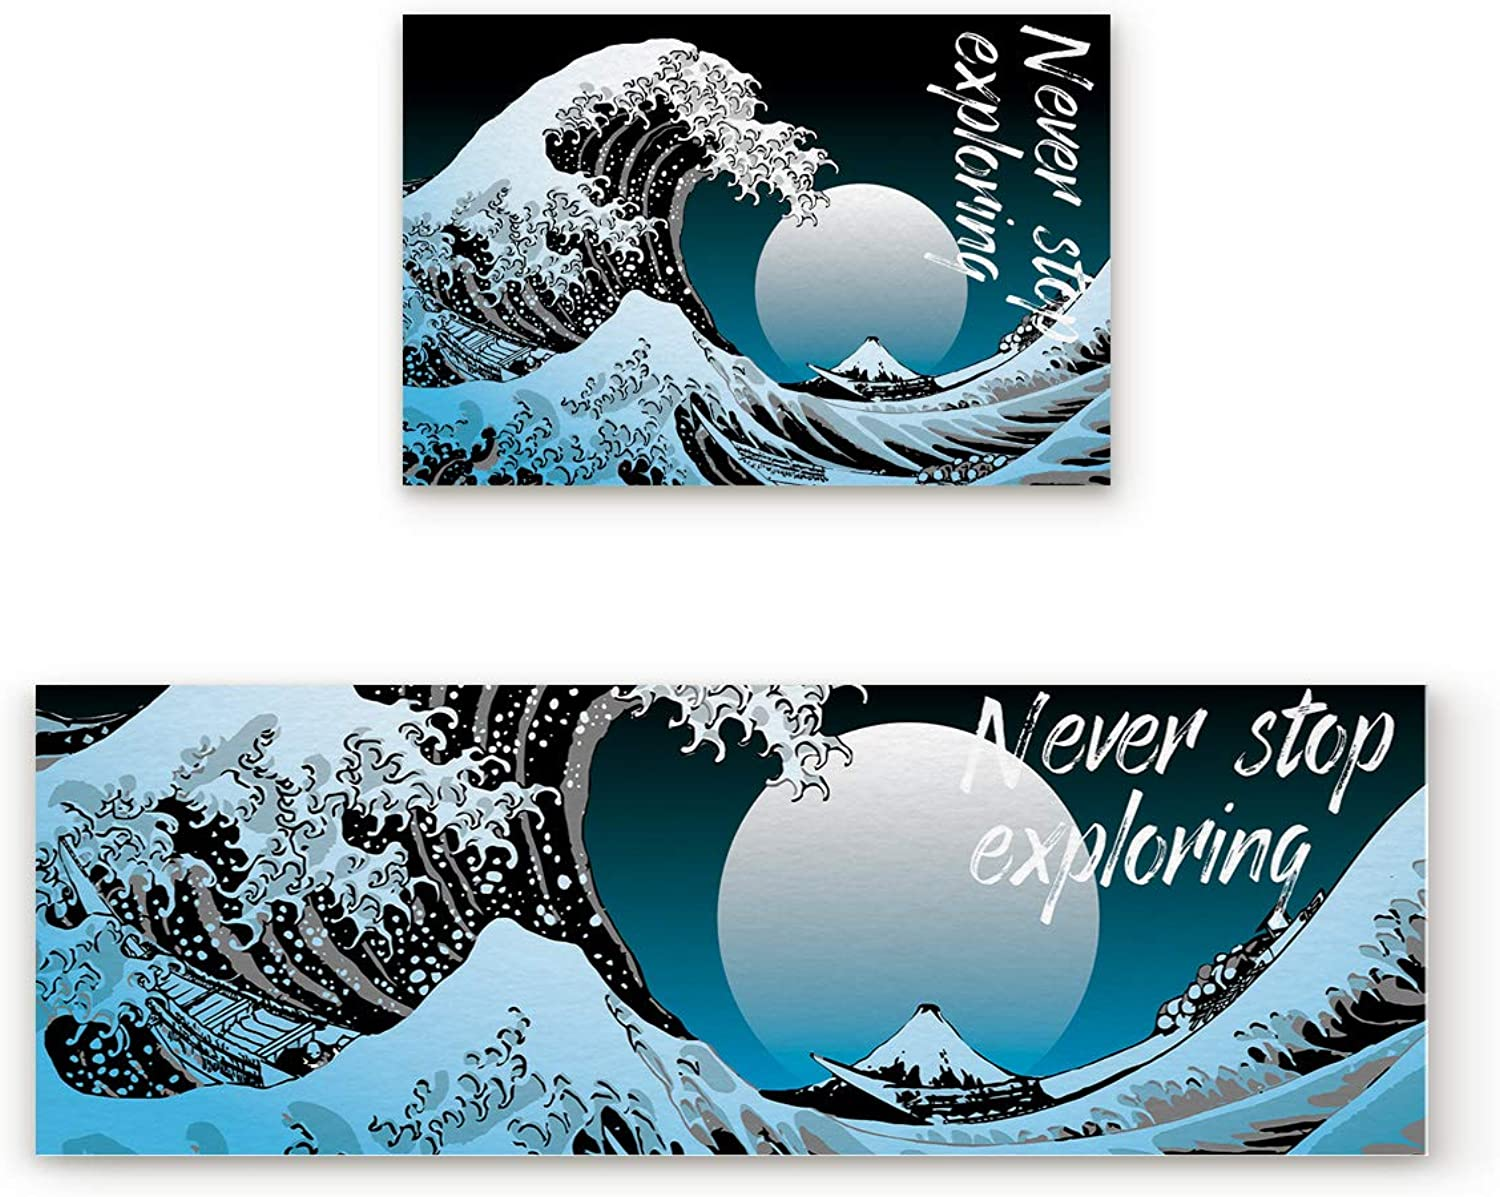 SODIKA Non Slip Kitchen Rug Set 2 Piece, Floor Mat Carpet Runner,Kanagawa Katsushika Hokusai Thirty-six Views Mount Fuji Never Stop Exploring (19.7x31.5in+19.7x63 inches)